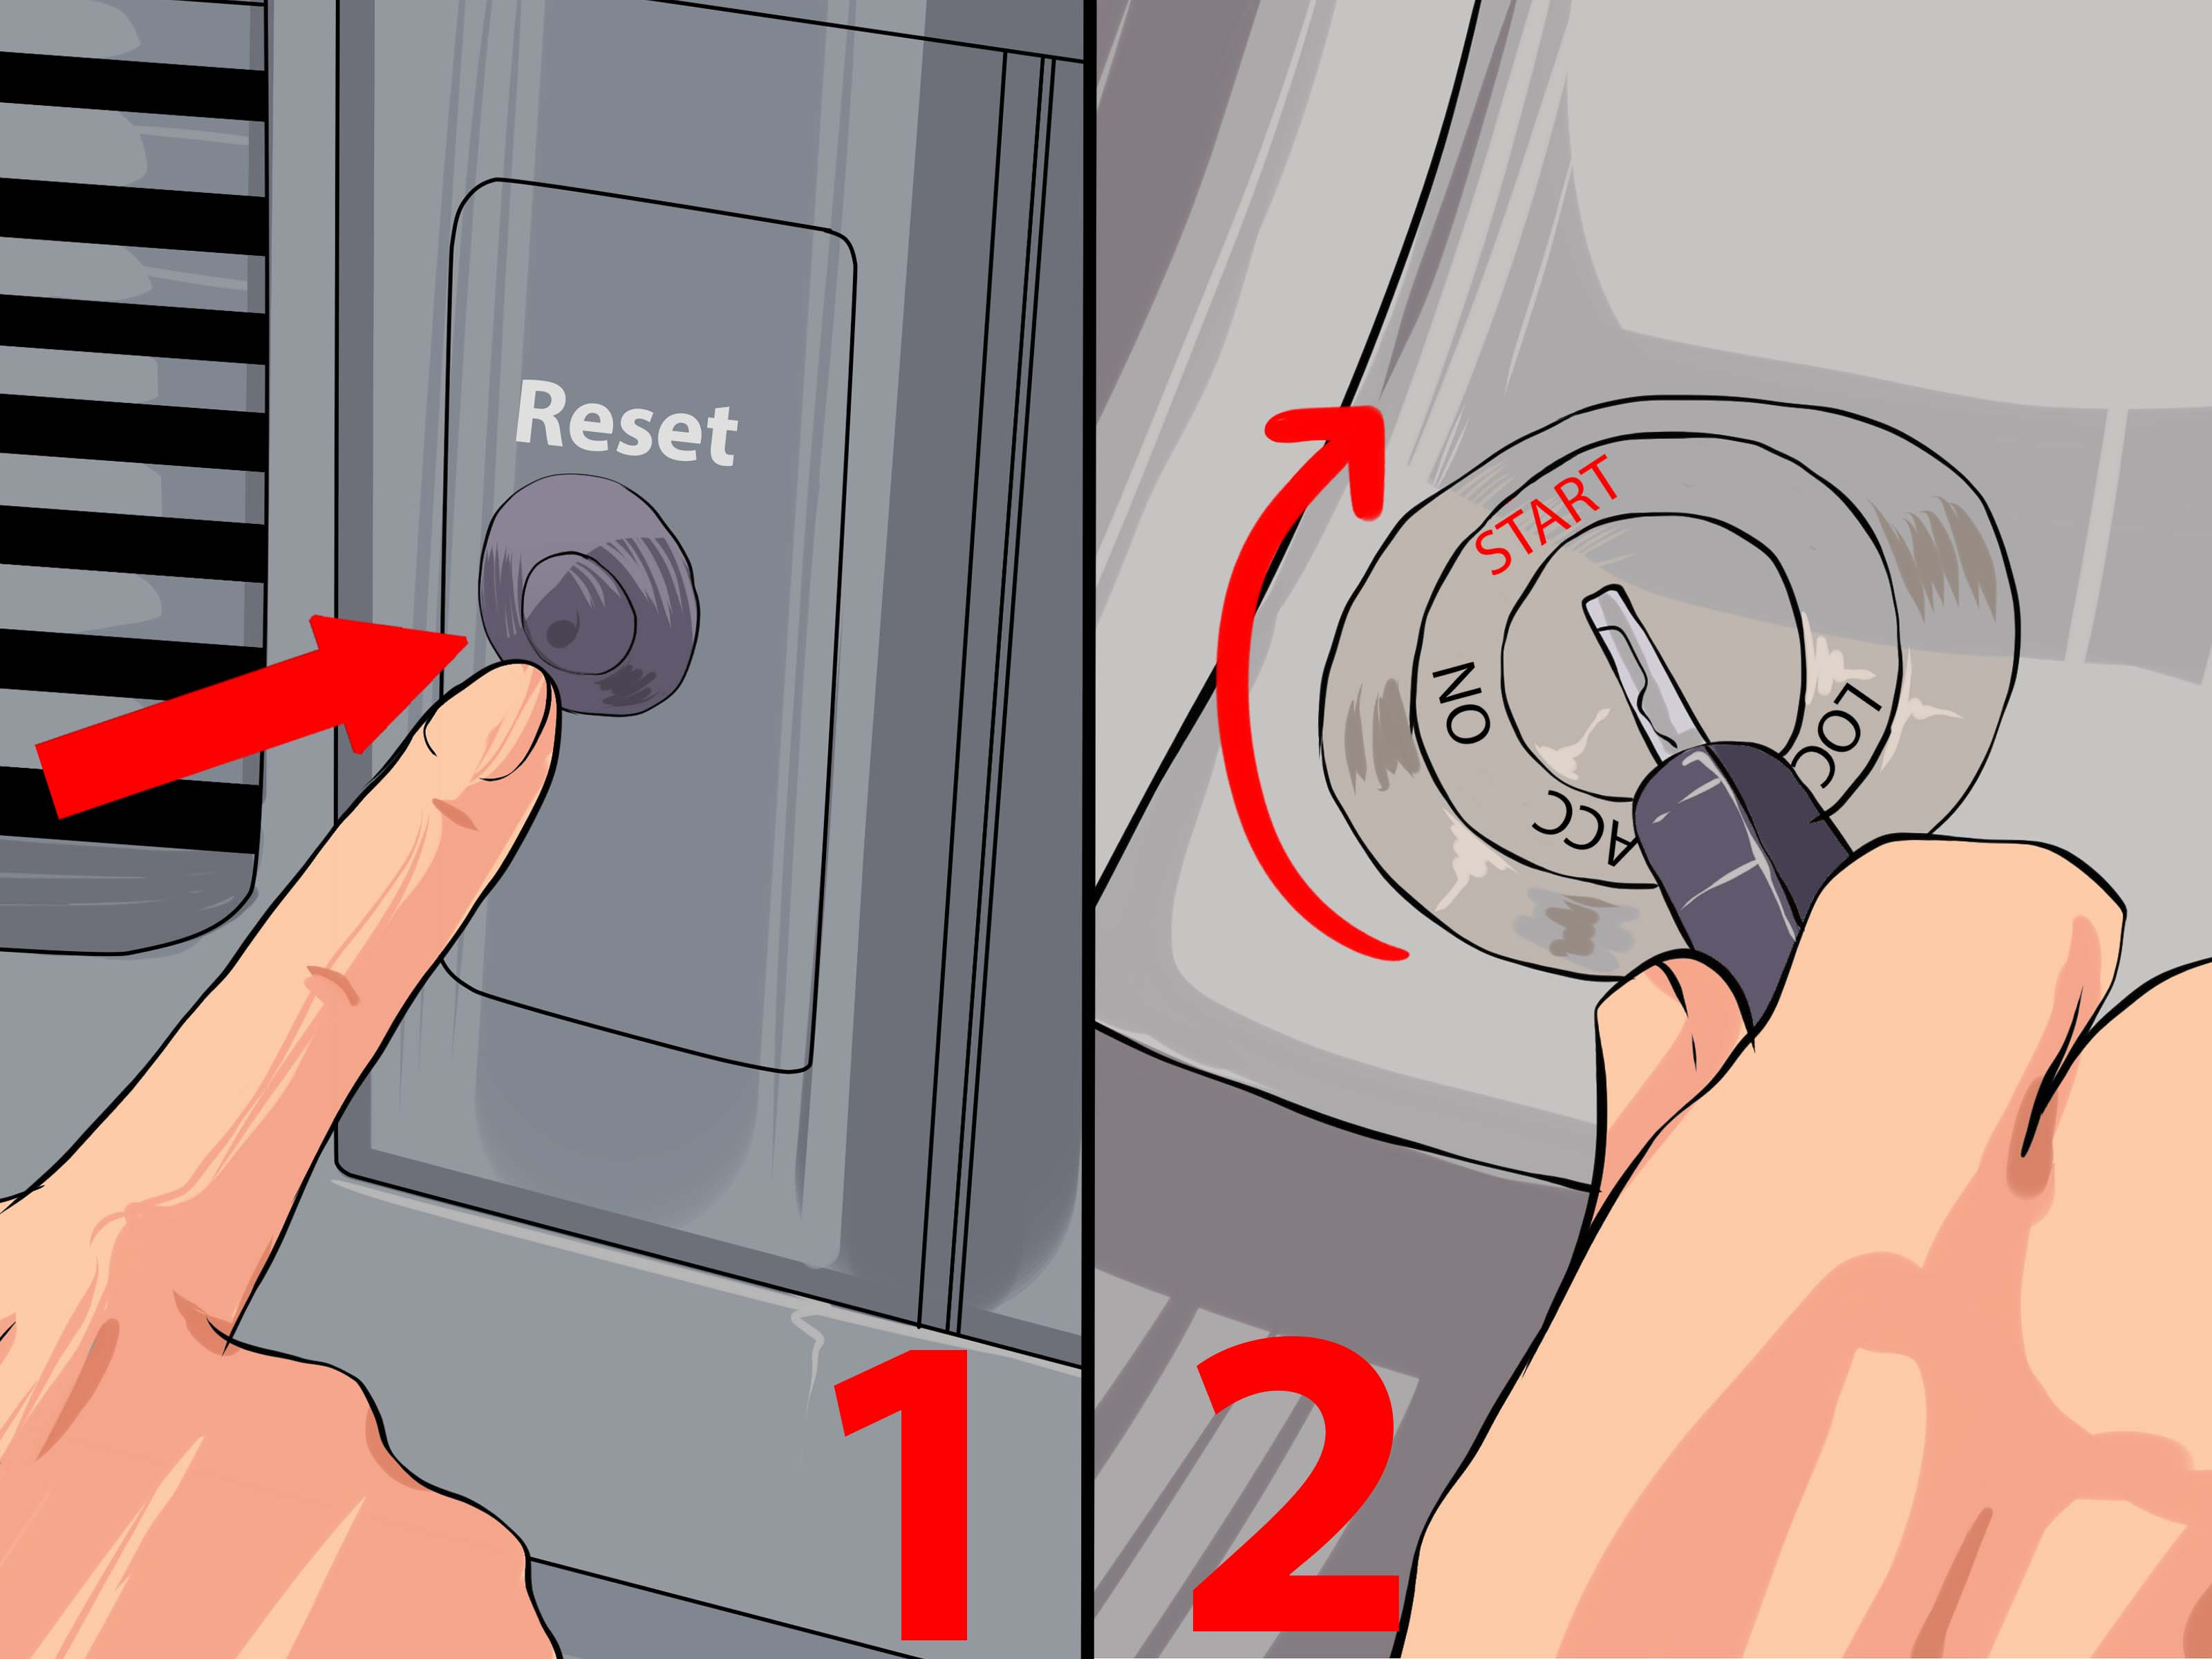 2005 Volvo Xc90 Fuse Diagram 3 Ways To Reset A Factory Car Alarm Wikihow